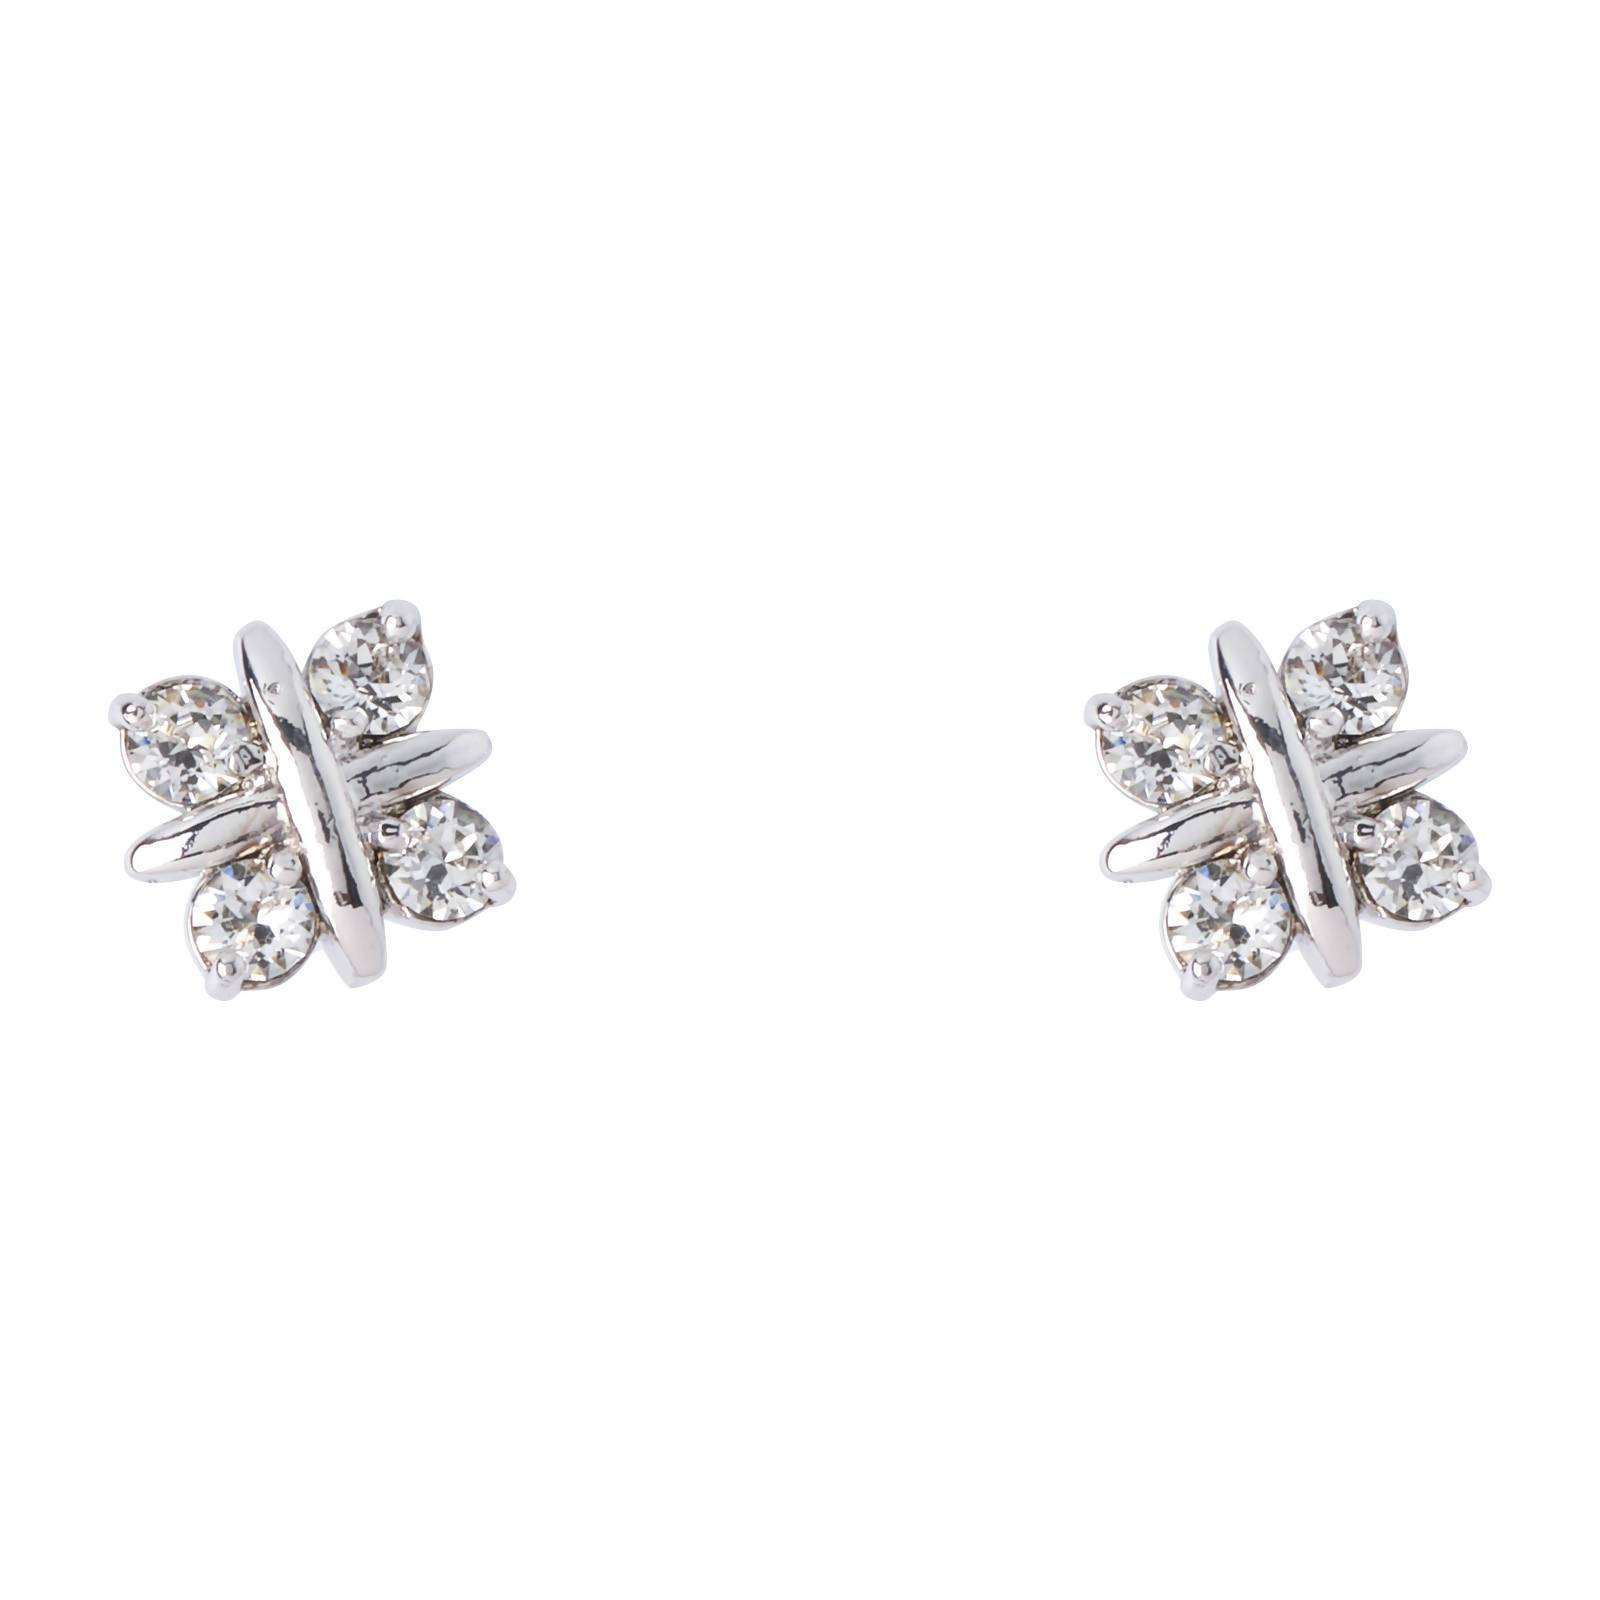 Kisses From Heaven (Snowflake) Earrings - Earring Studs - Forest Jewelry - Naiise